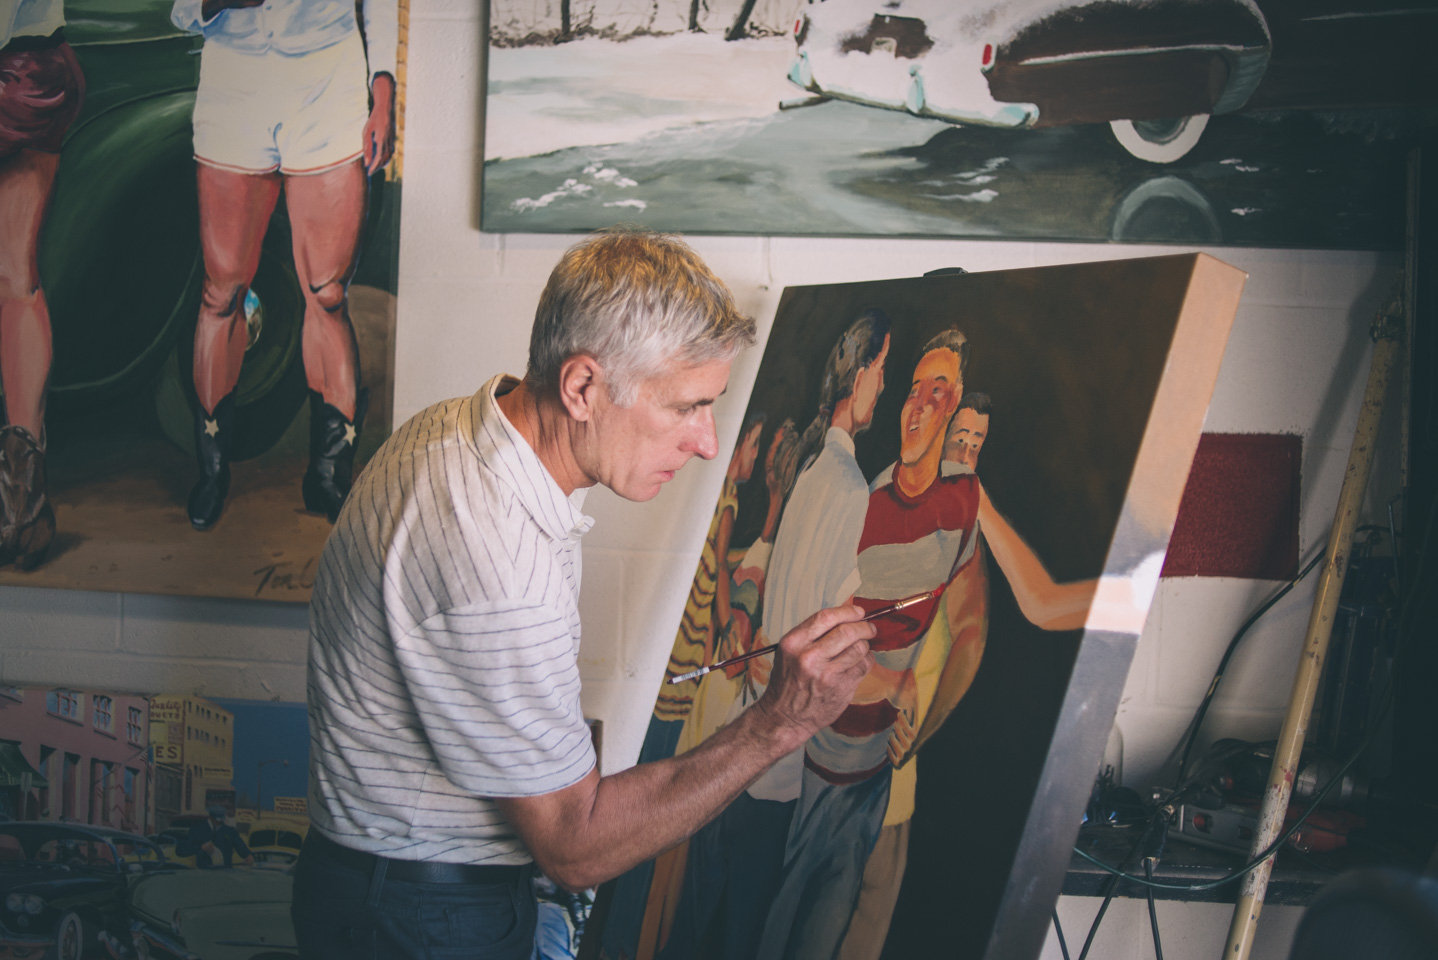 Tom Cannady working on a painting.Photo by Sarah Katherine Davis For LVA (2016).